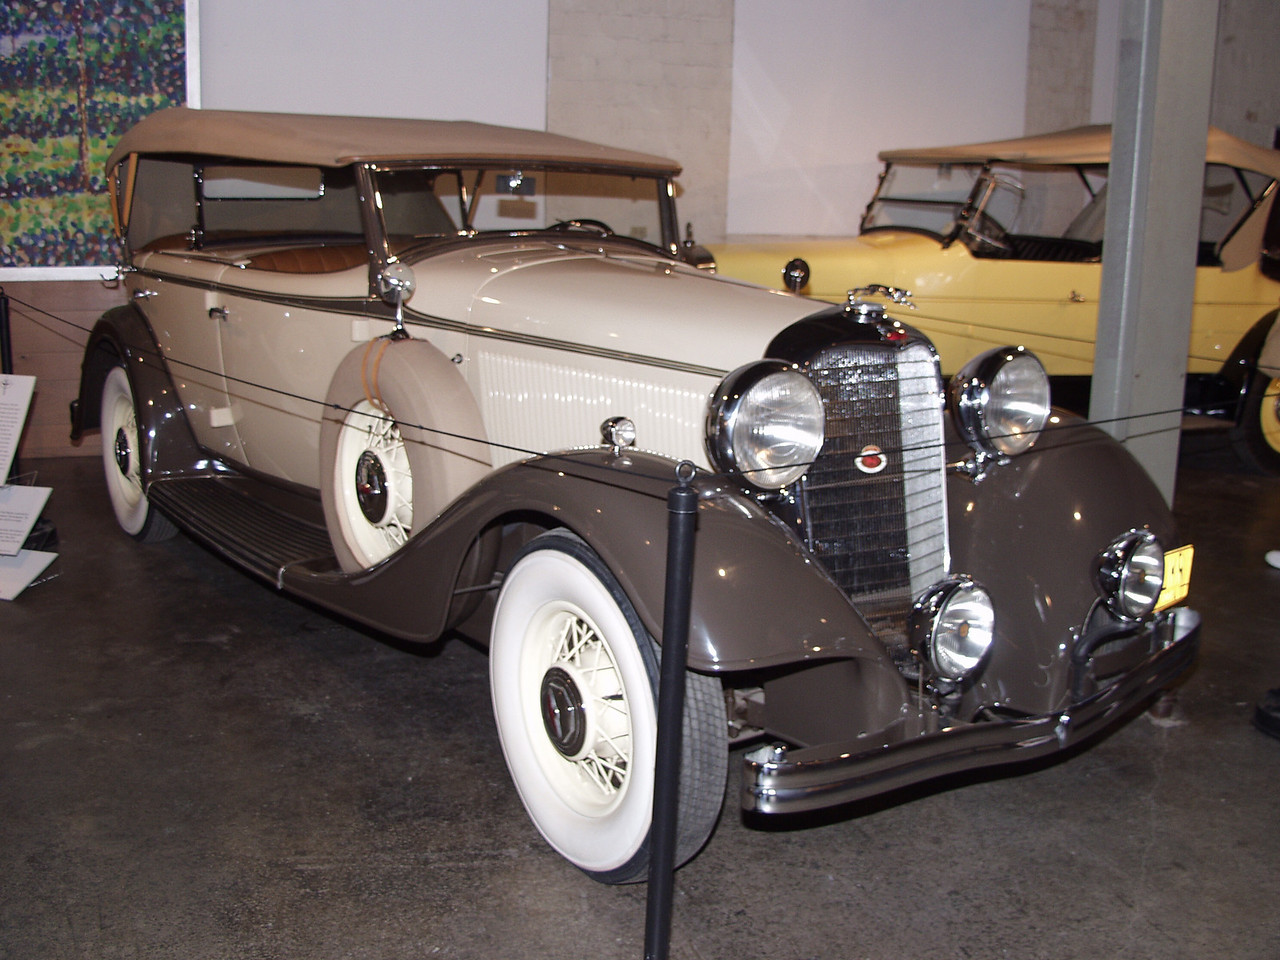 "The KB Lincoln was introduced in 1932 with Lincoln's first production twelve cylinder engine. That year, the KA was brought out with a V-8 engine and priced lower than  Lincoln's previous K models. For 1933 the KA's line was expanded to include 12 different body styles. The series was once again restyled and included the addition of hood louvers and a chrome mesh grille. Also, the V-12 was now  the standard engine for the KA series. Aluminum pistons were used and the crankshaft was carried in four bearings. The detachable cylinder heads were constructed  of cast iron. While the engine for the  KA was based on the KB V-12  it was simpler and less expensive to   manufacture.   A total of twelve KA dual cowl phaetons such as this one were produced in 1933.<br /> The 1933 Lincoln KA Dual Cowl Phaeton is powered by a 448 cubic inch  V12 that produces 150 horsepower. The wheelbase measures 145 inches, and the car weighs approximately 5,500 pounds.<br /> In 1933 Adolph Hitler became Chancellor, then dictator of Germany. The Agriculture Adjustment Act was passed as part of President Franklin D. Roosevelt's ""New Deal"" providing relief to American farmers, especially in the dust bowl areas."